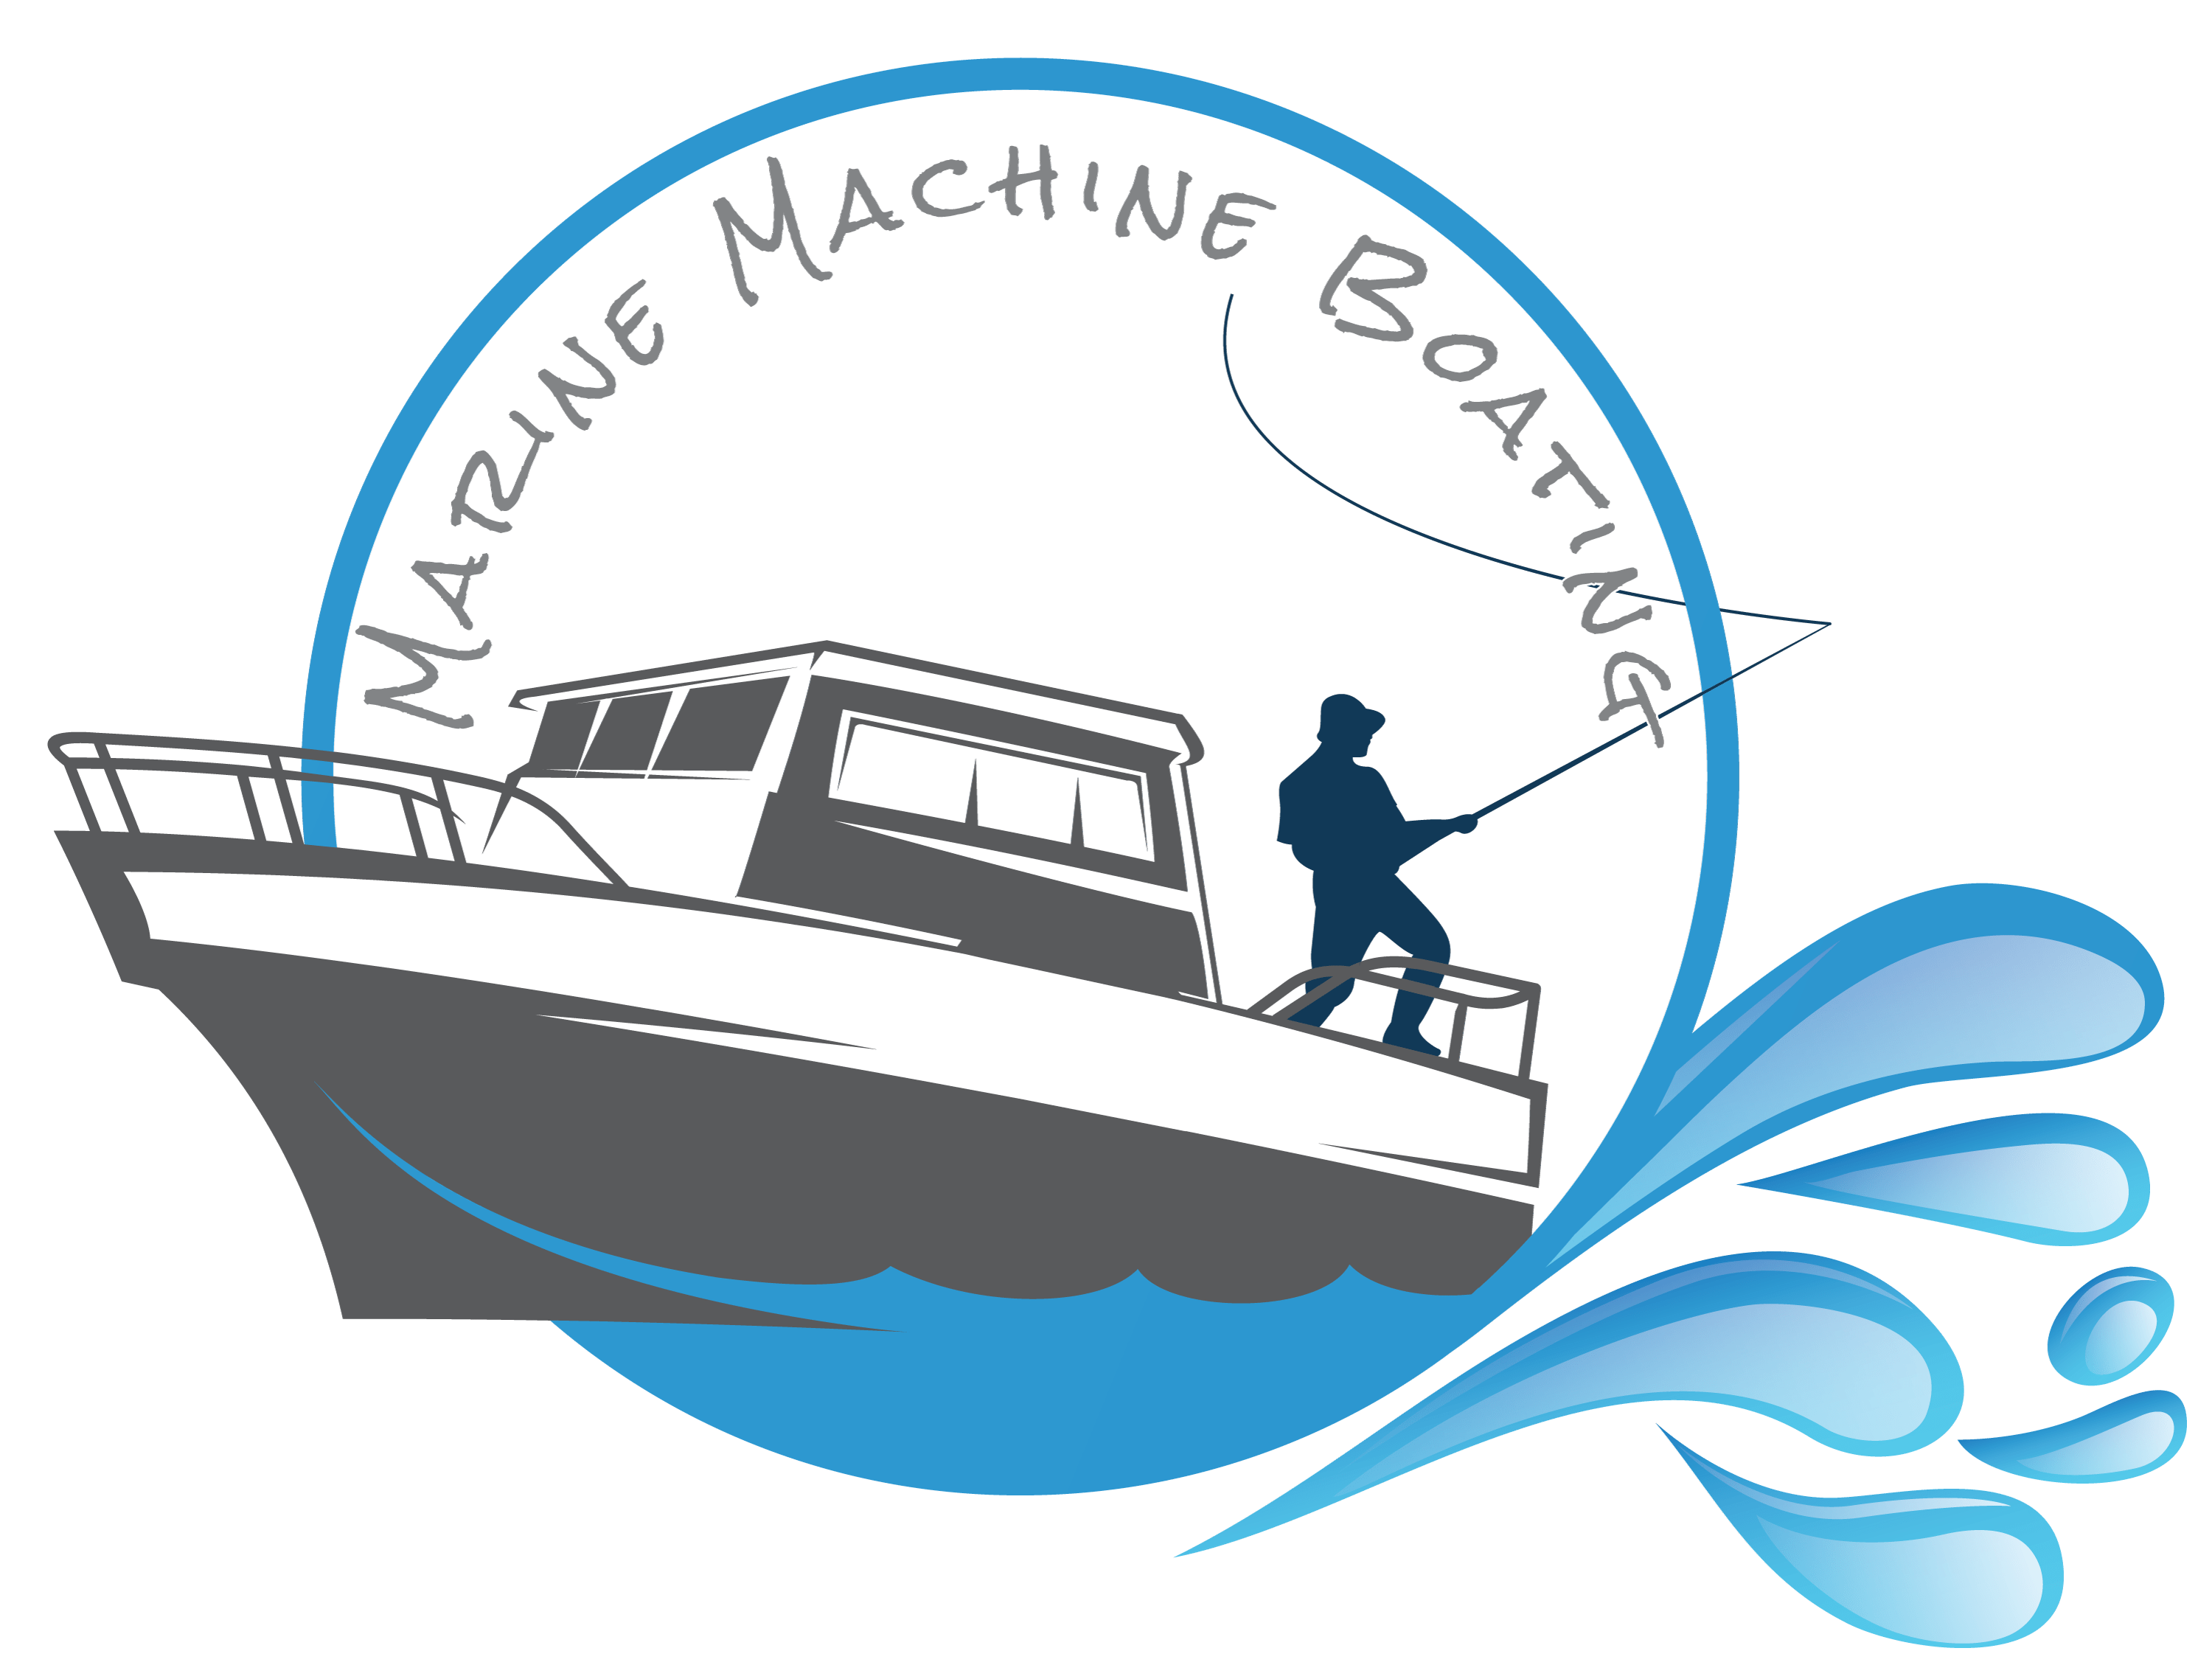 Peri Peri Creative - Marine-Machine-Boating-final logo